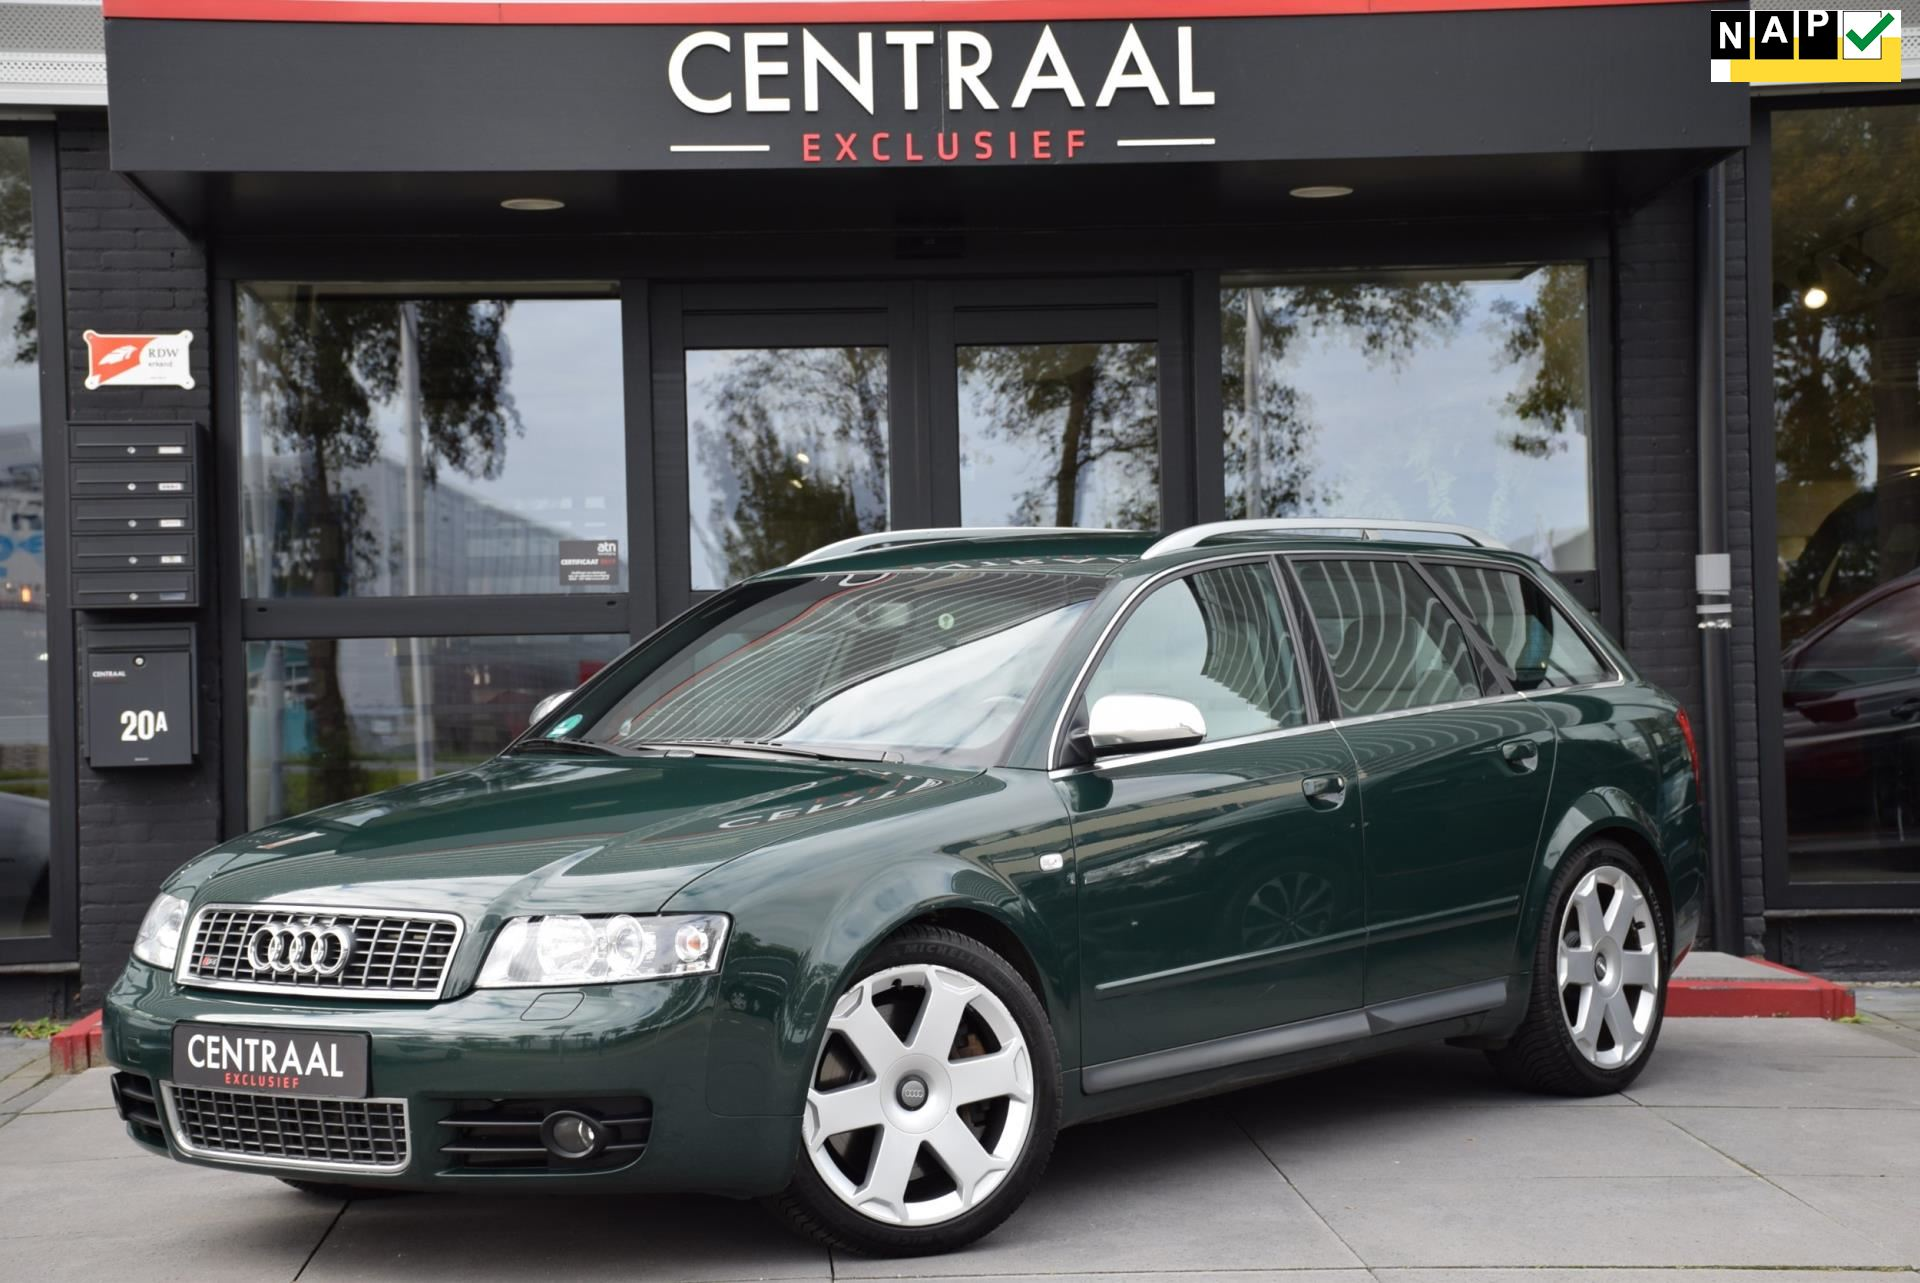 Audi S4 occasion - Centraal Exclusief B.V.